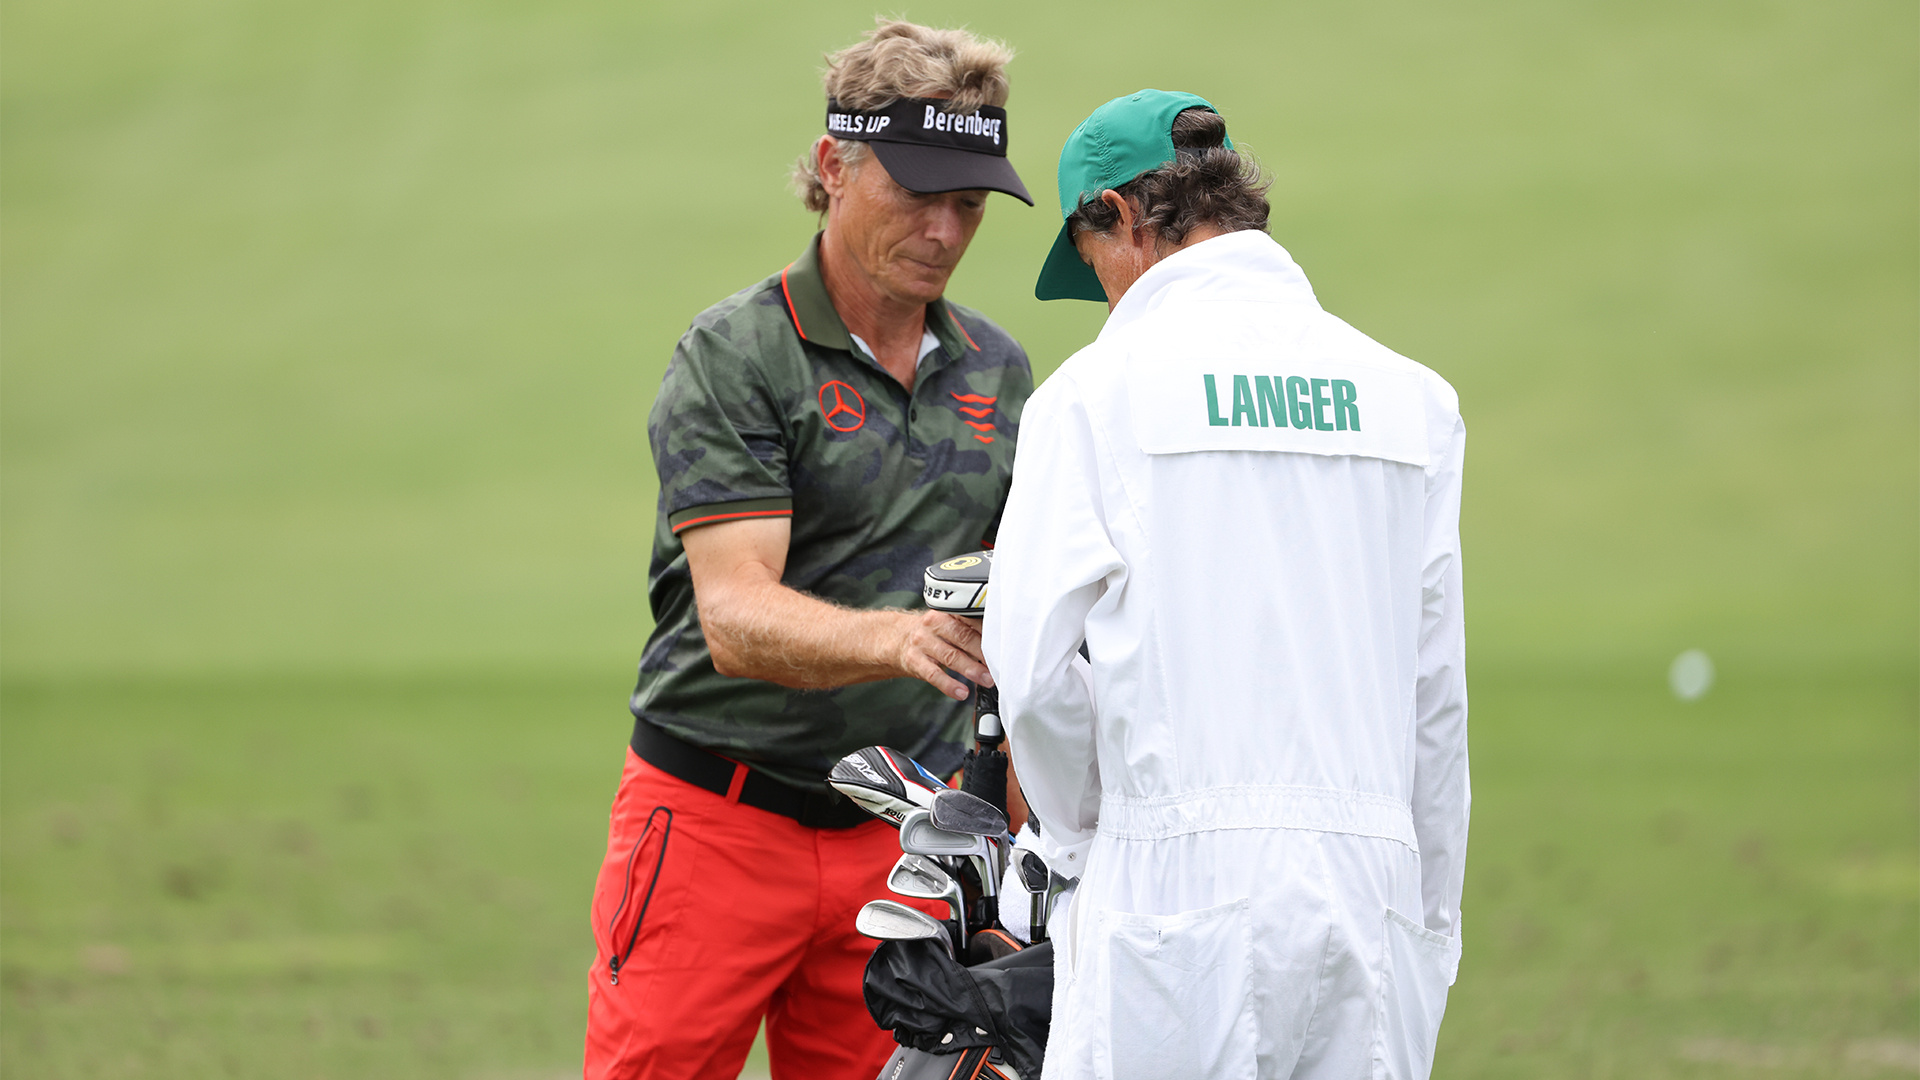 Bernhard Langer teaches you how to play golf